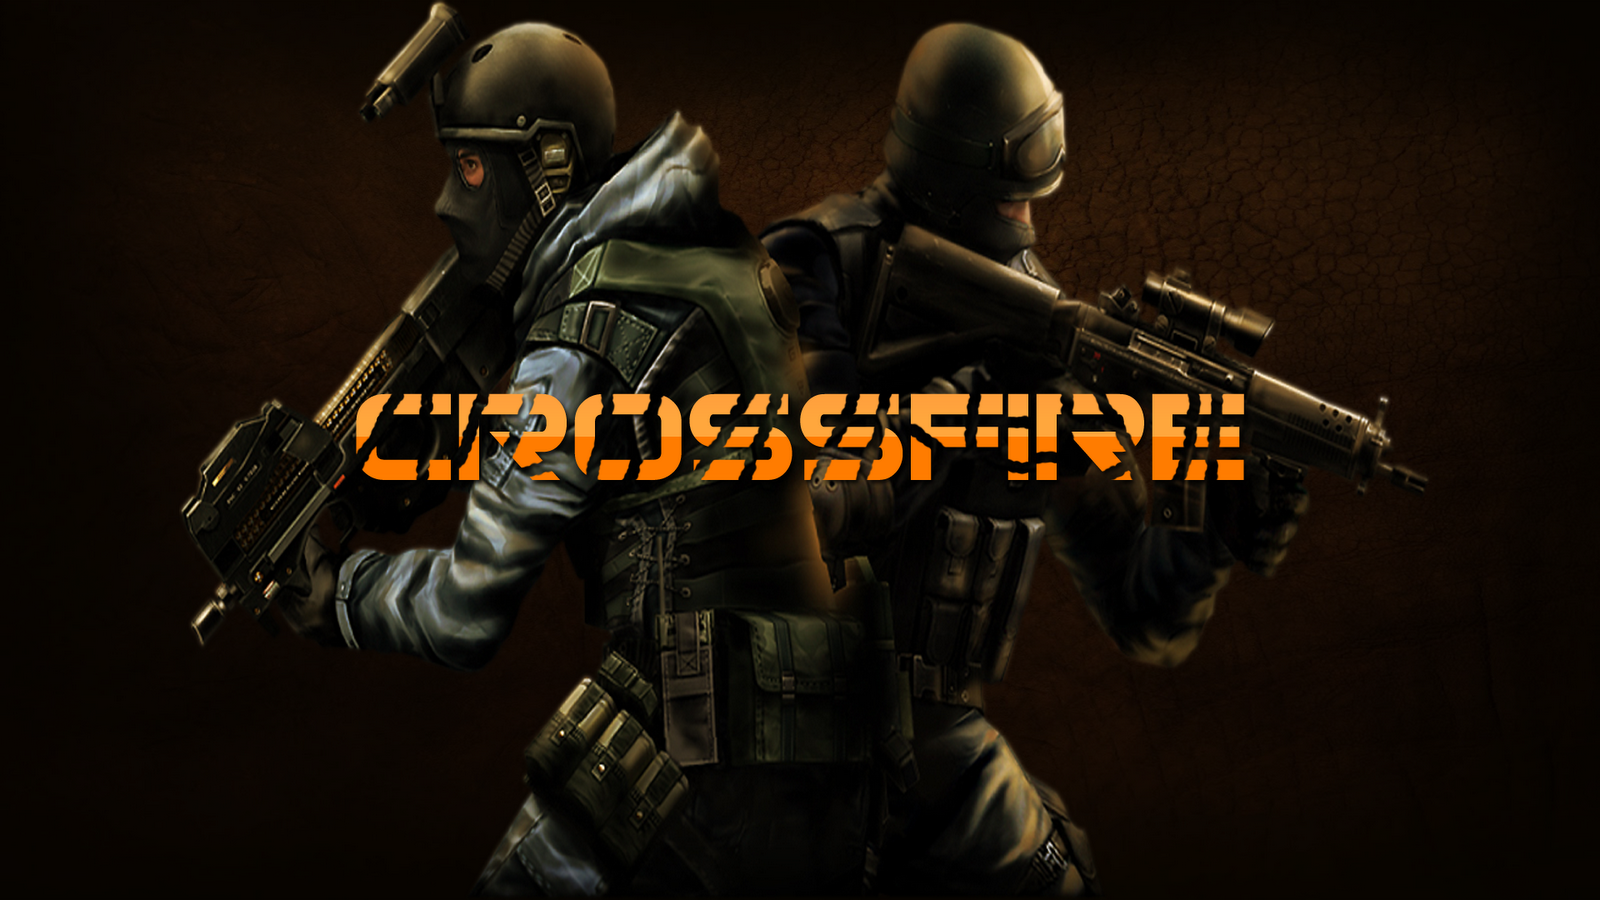 wallpaper crossfire collection 2011 - photo #3